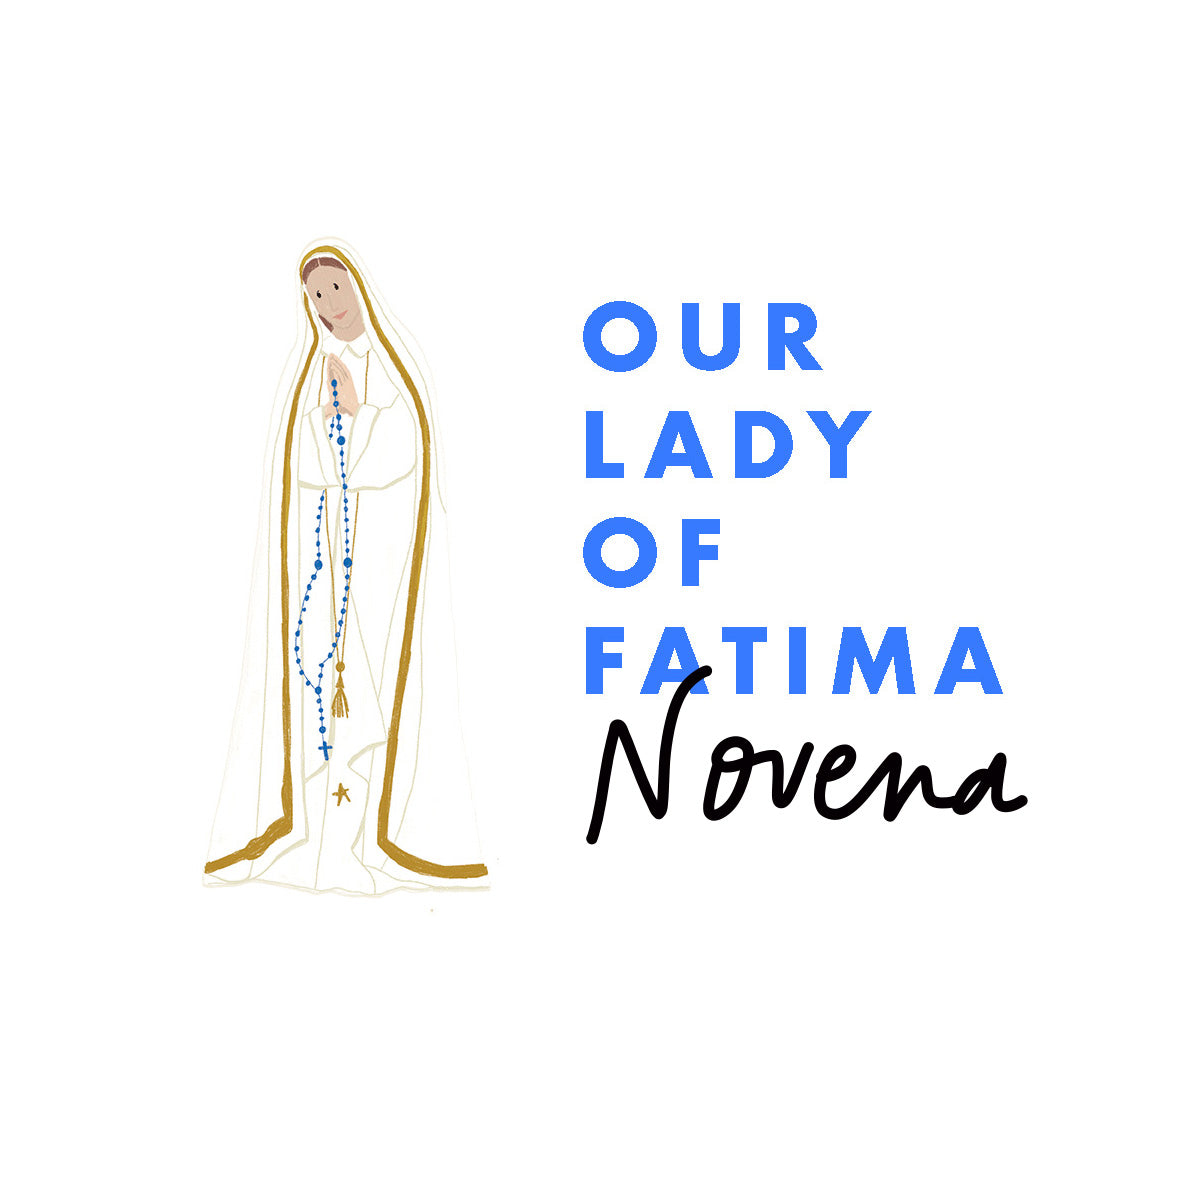 The Our Lady of Fatima Novena